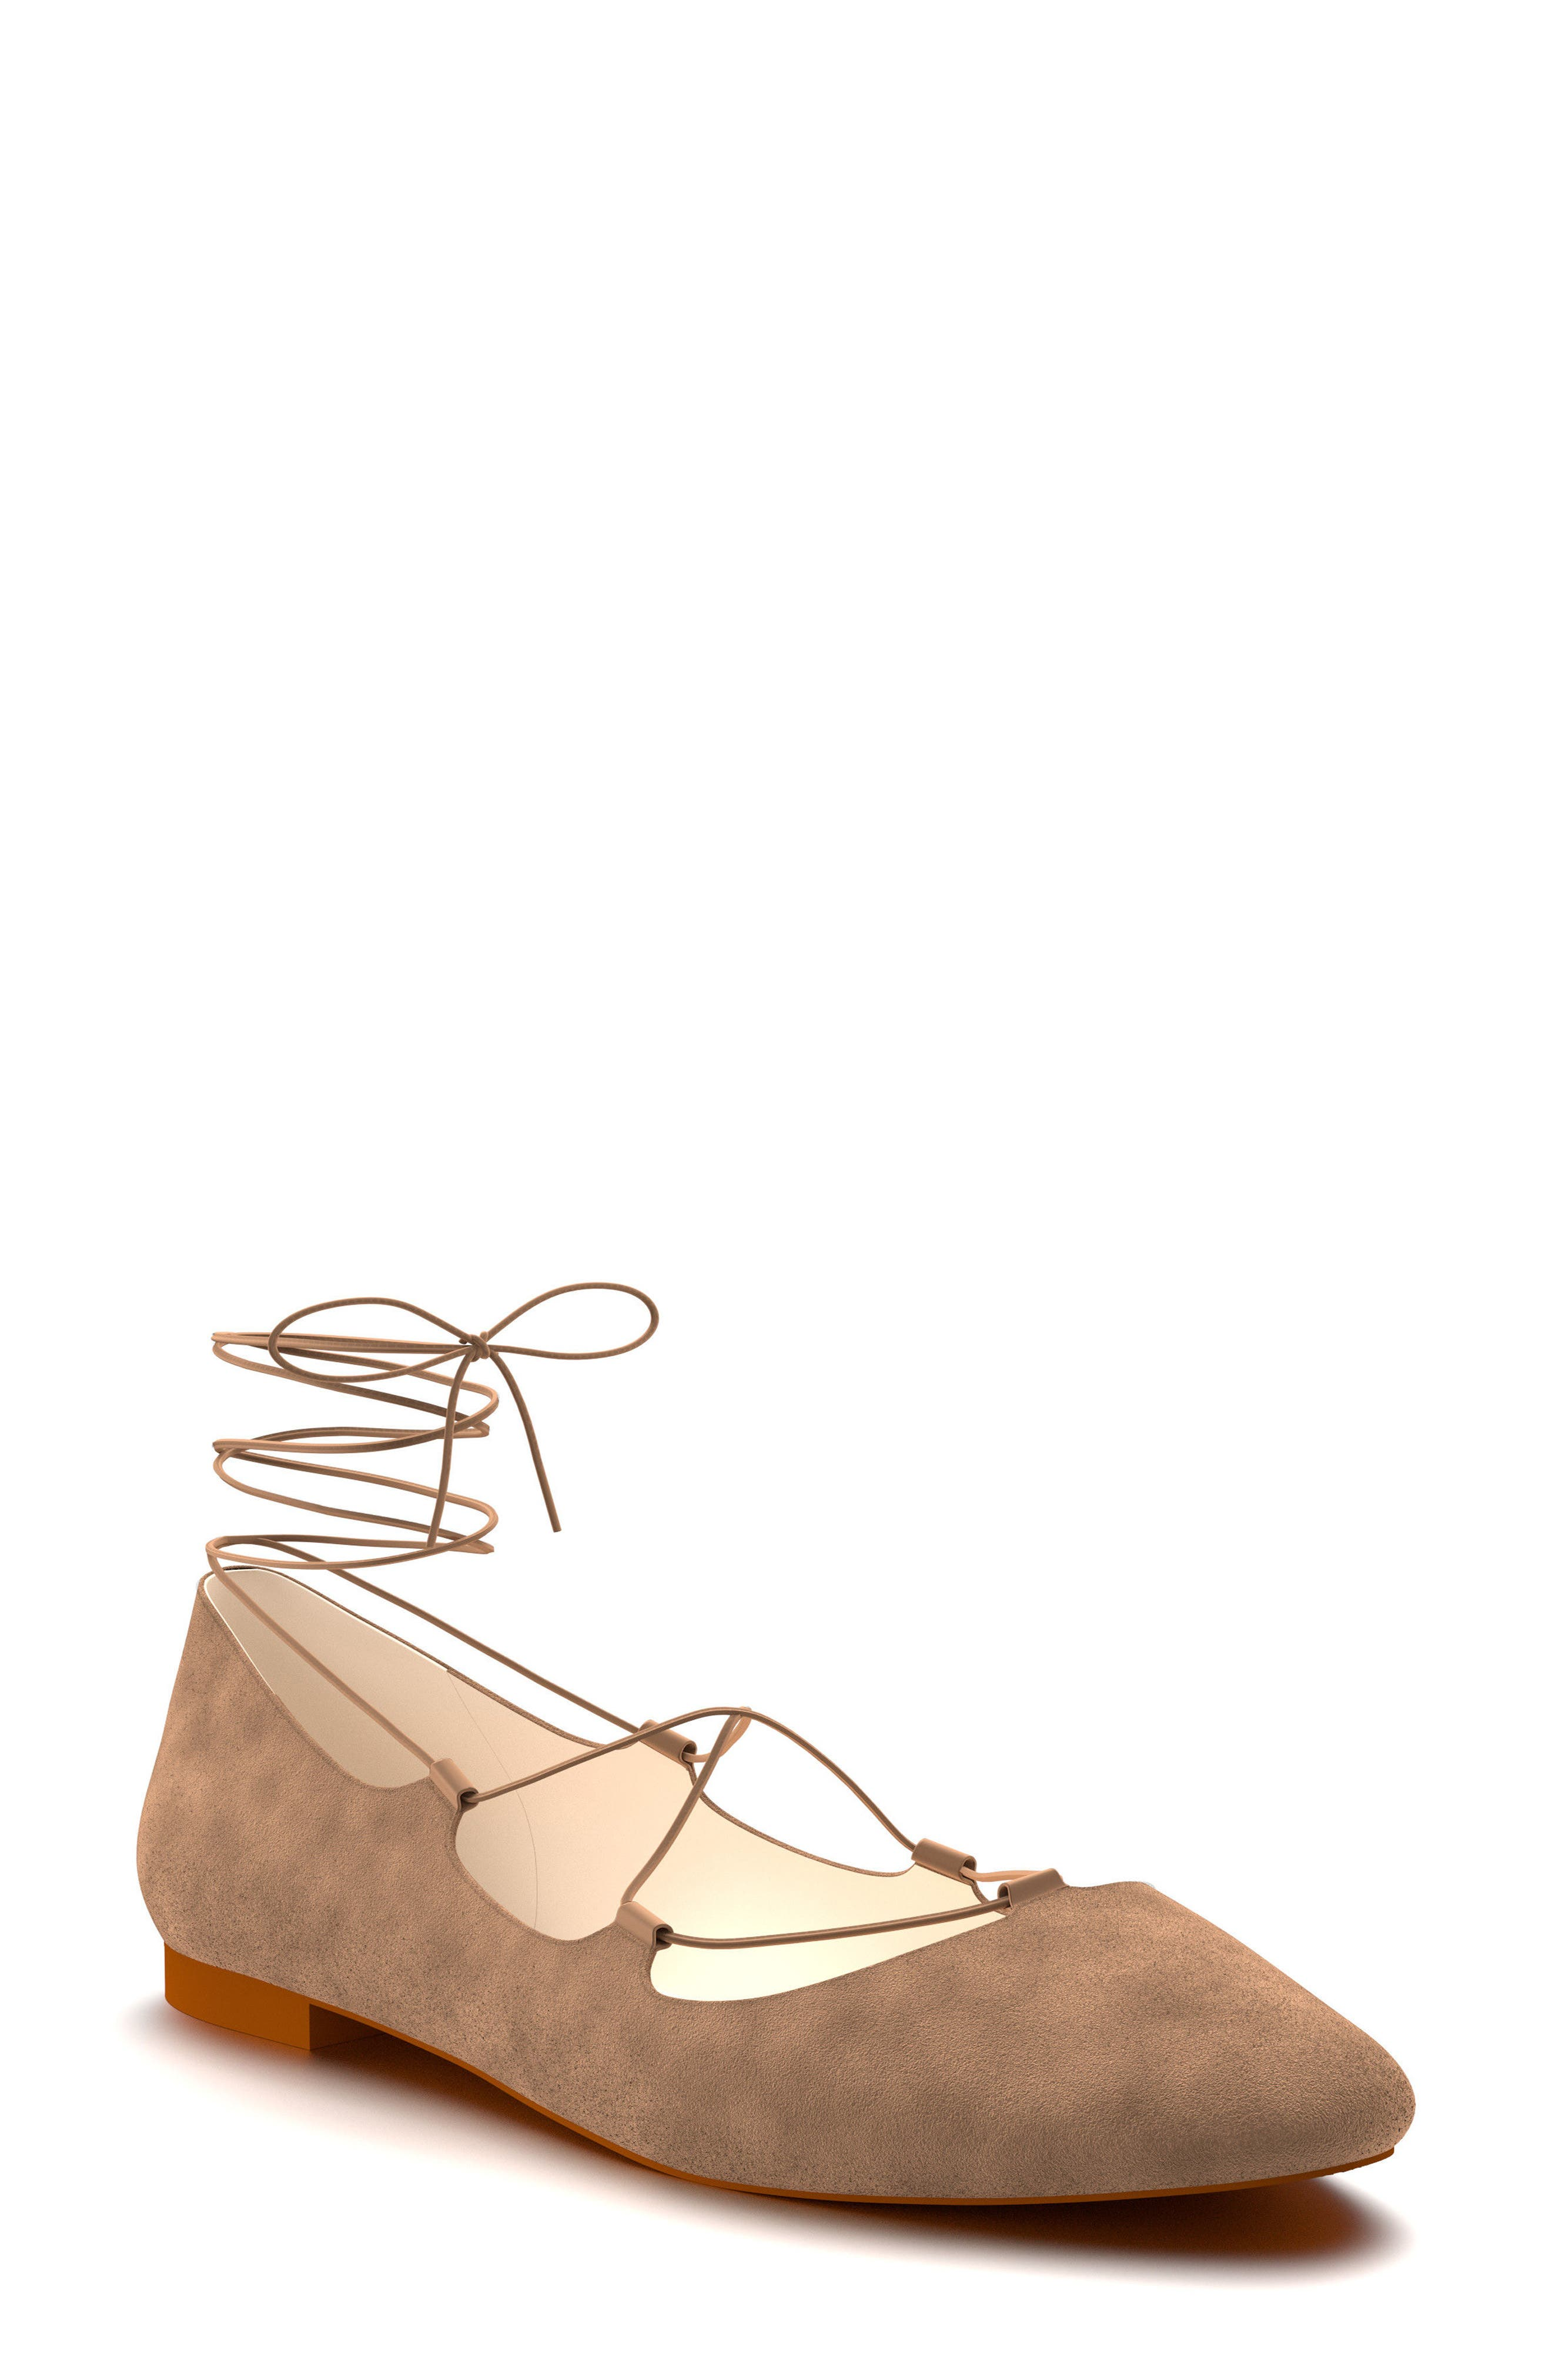 Ghillie Pointy Toe Ballet Flat,                             Main thumbnail 1, color,                             Tan Suede